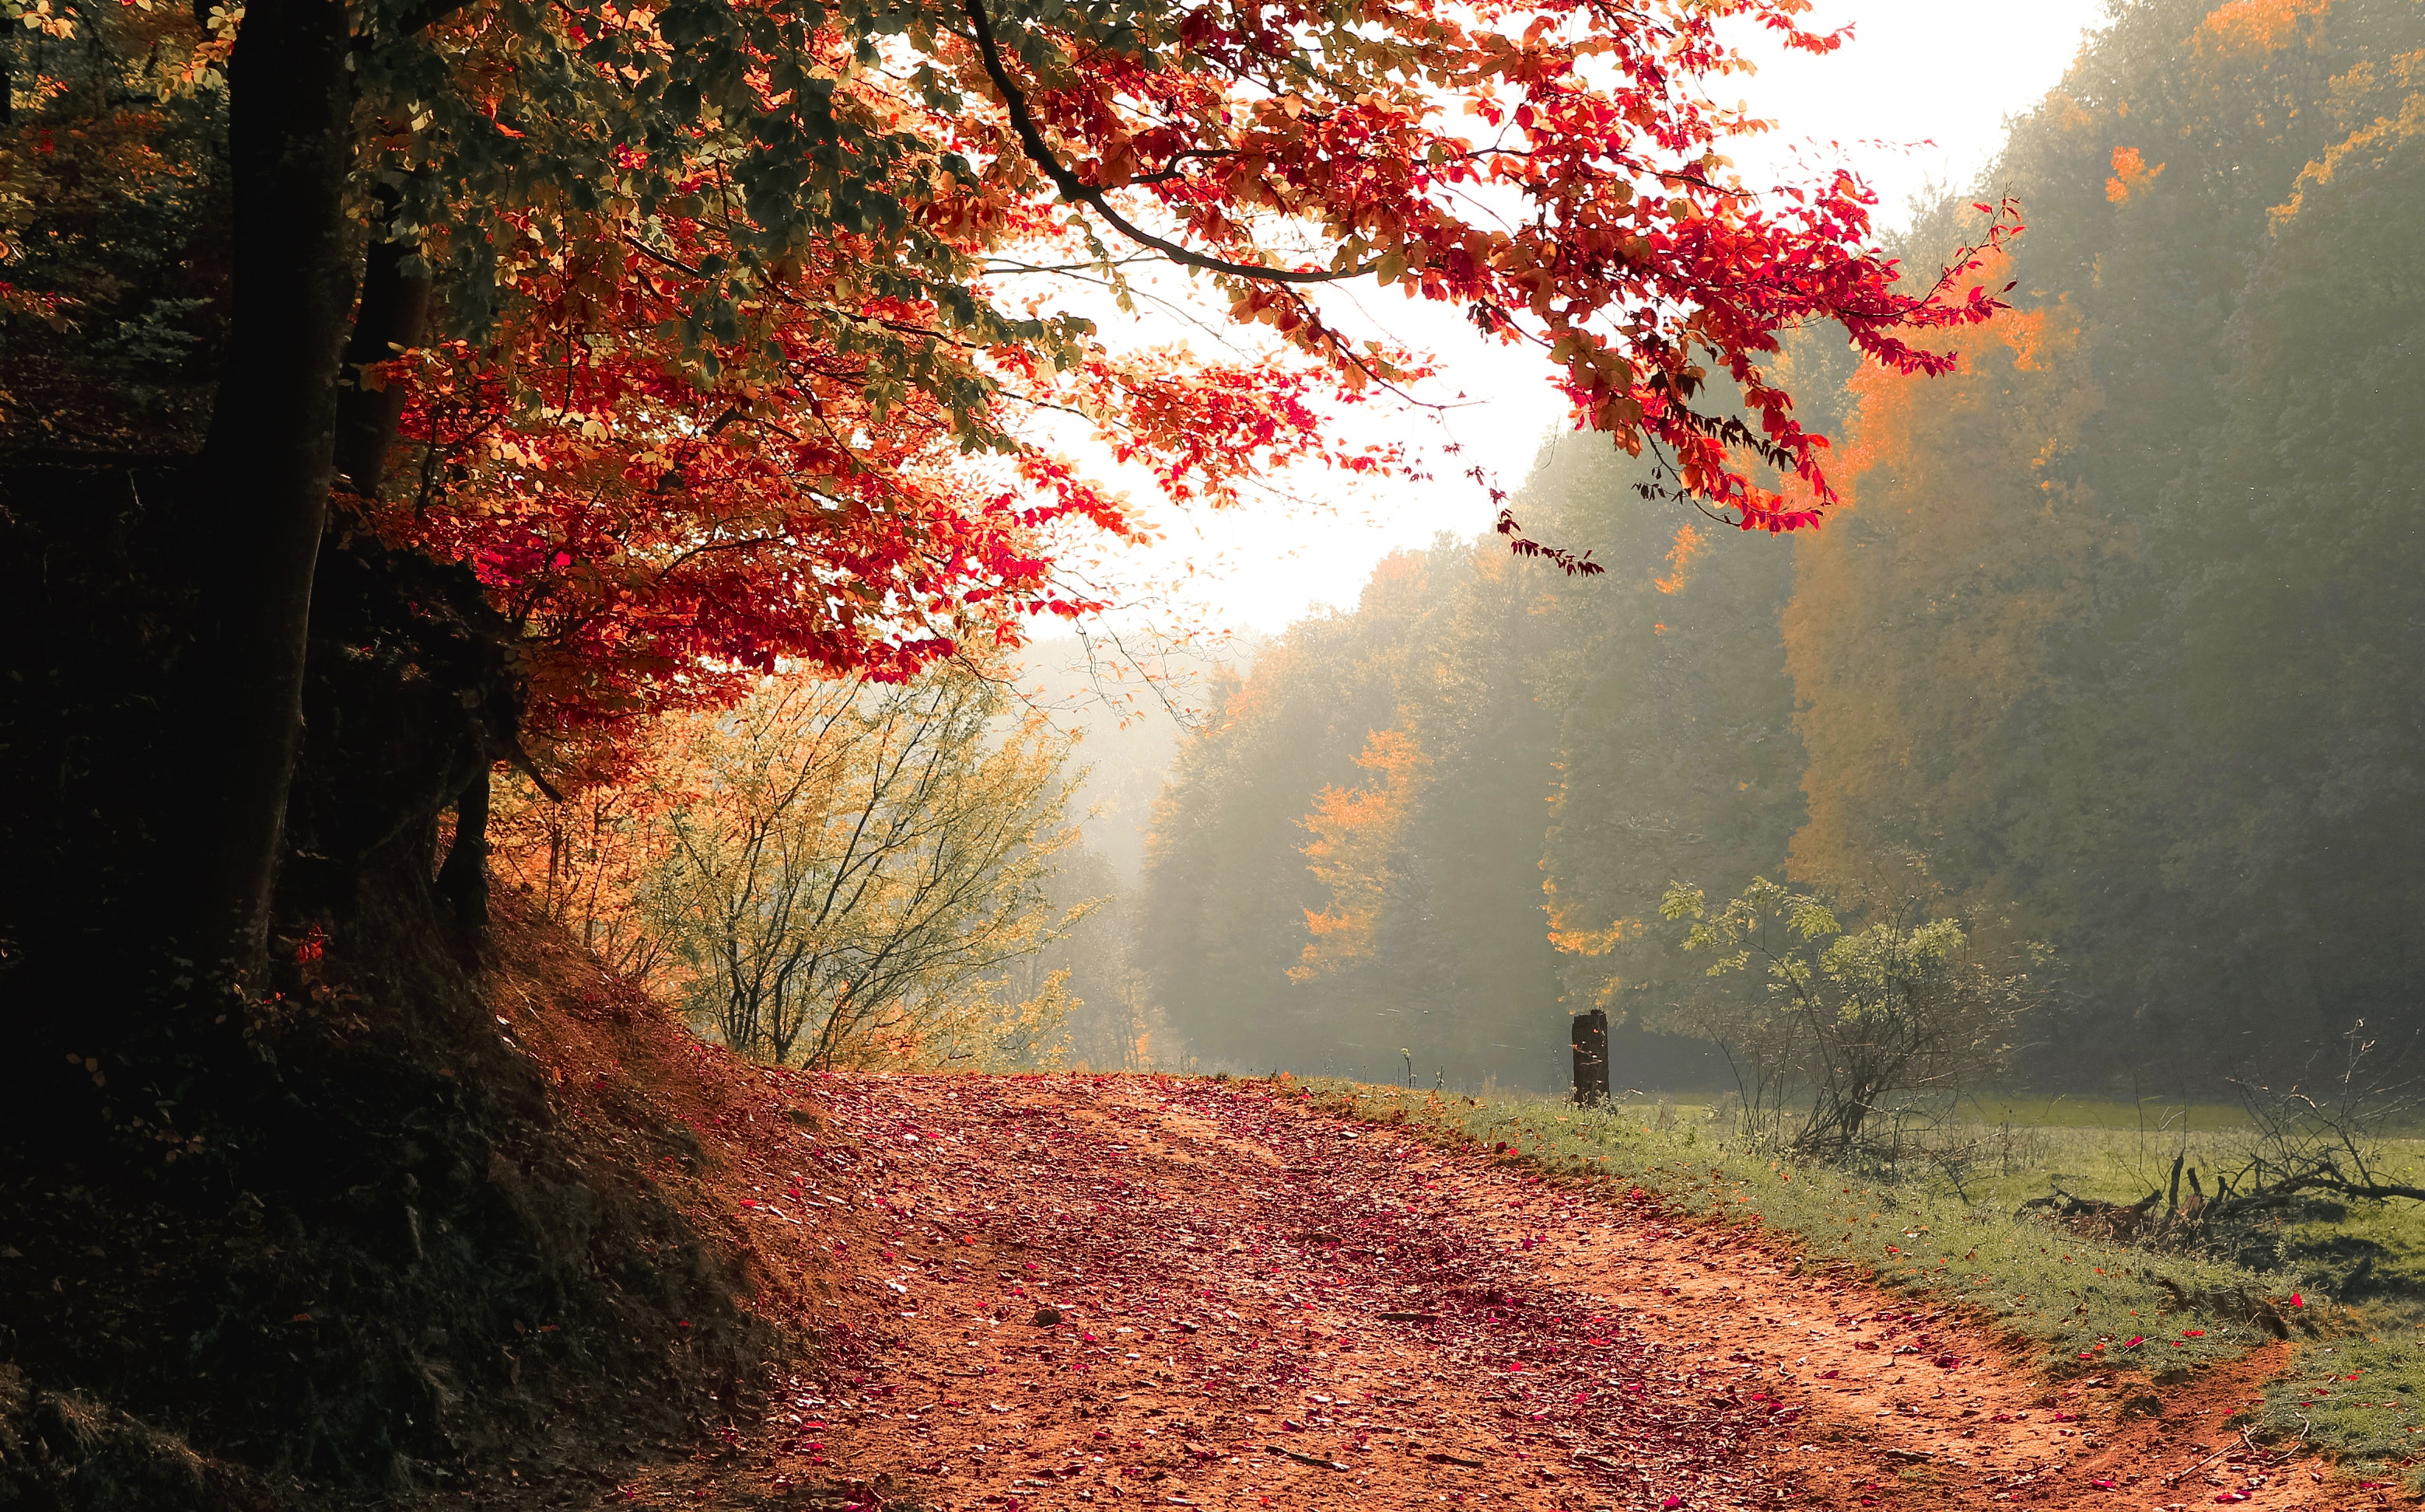 20 Creative Fall Photography Ideas - Daylight Autumn Fall by Vali S. via Pexels | https://www.roseclearfield.com